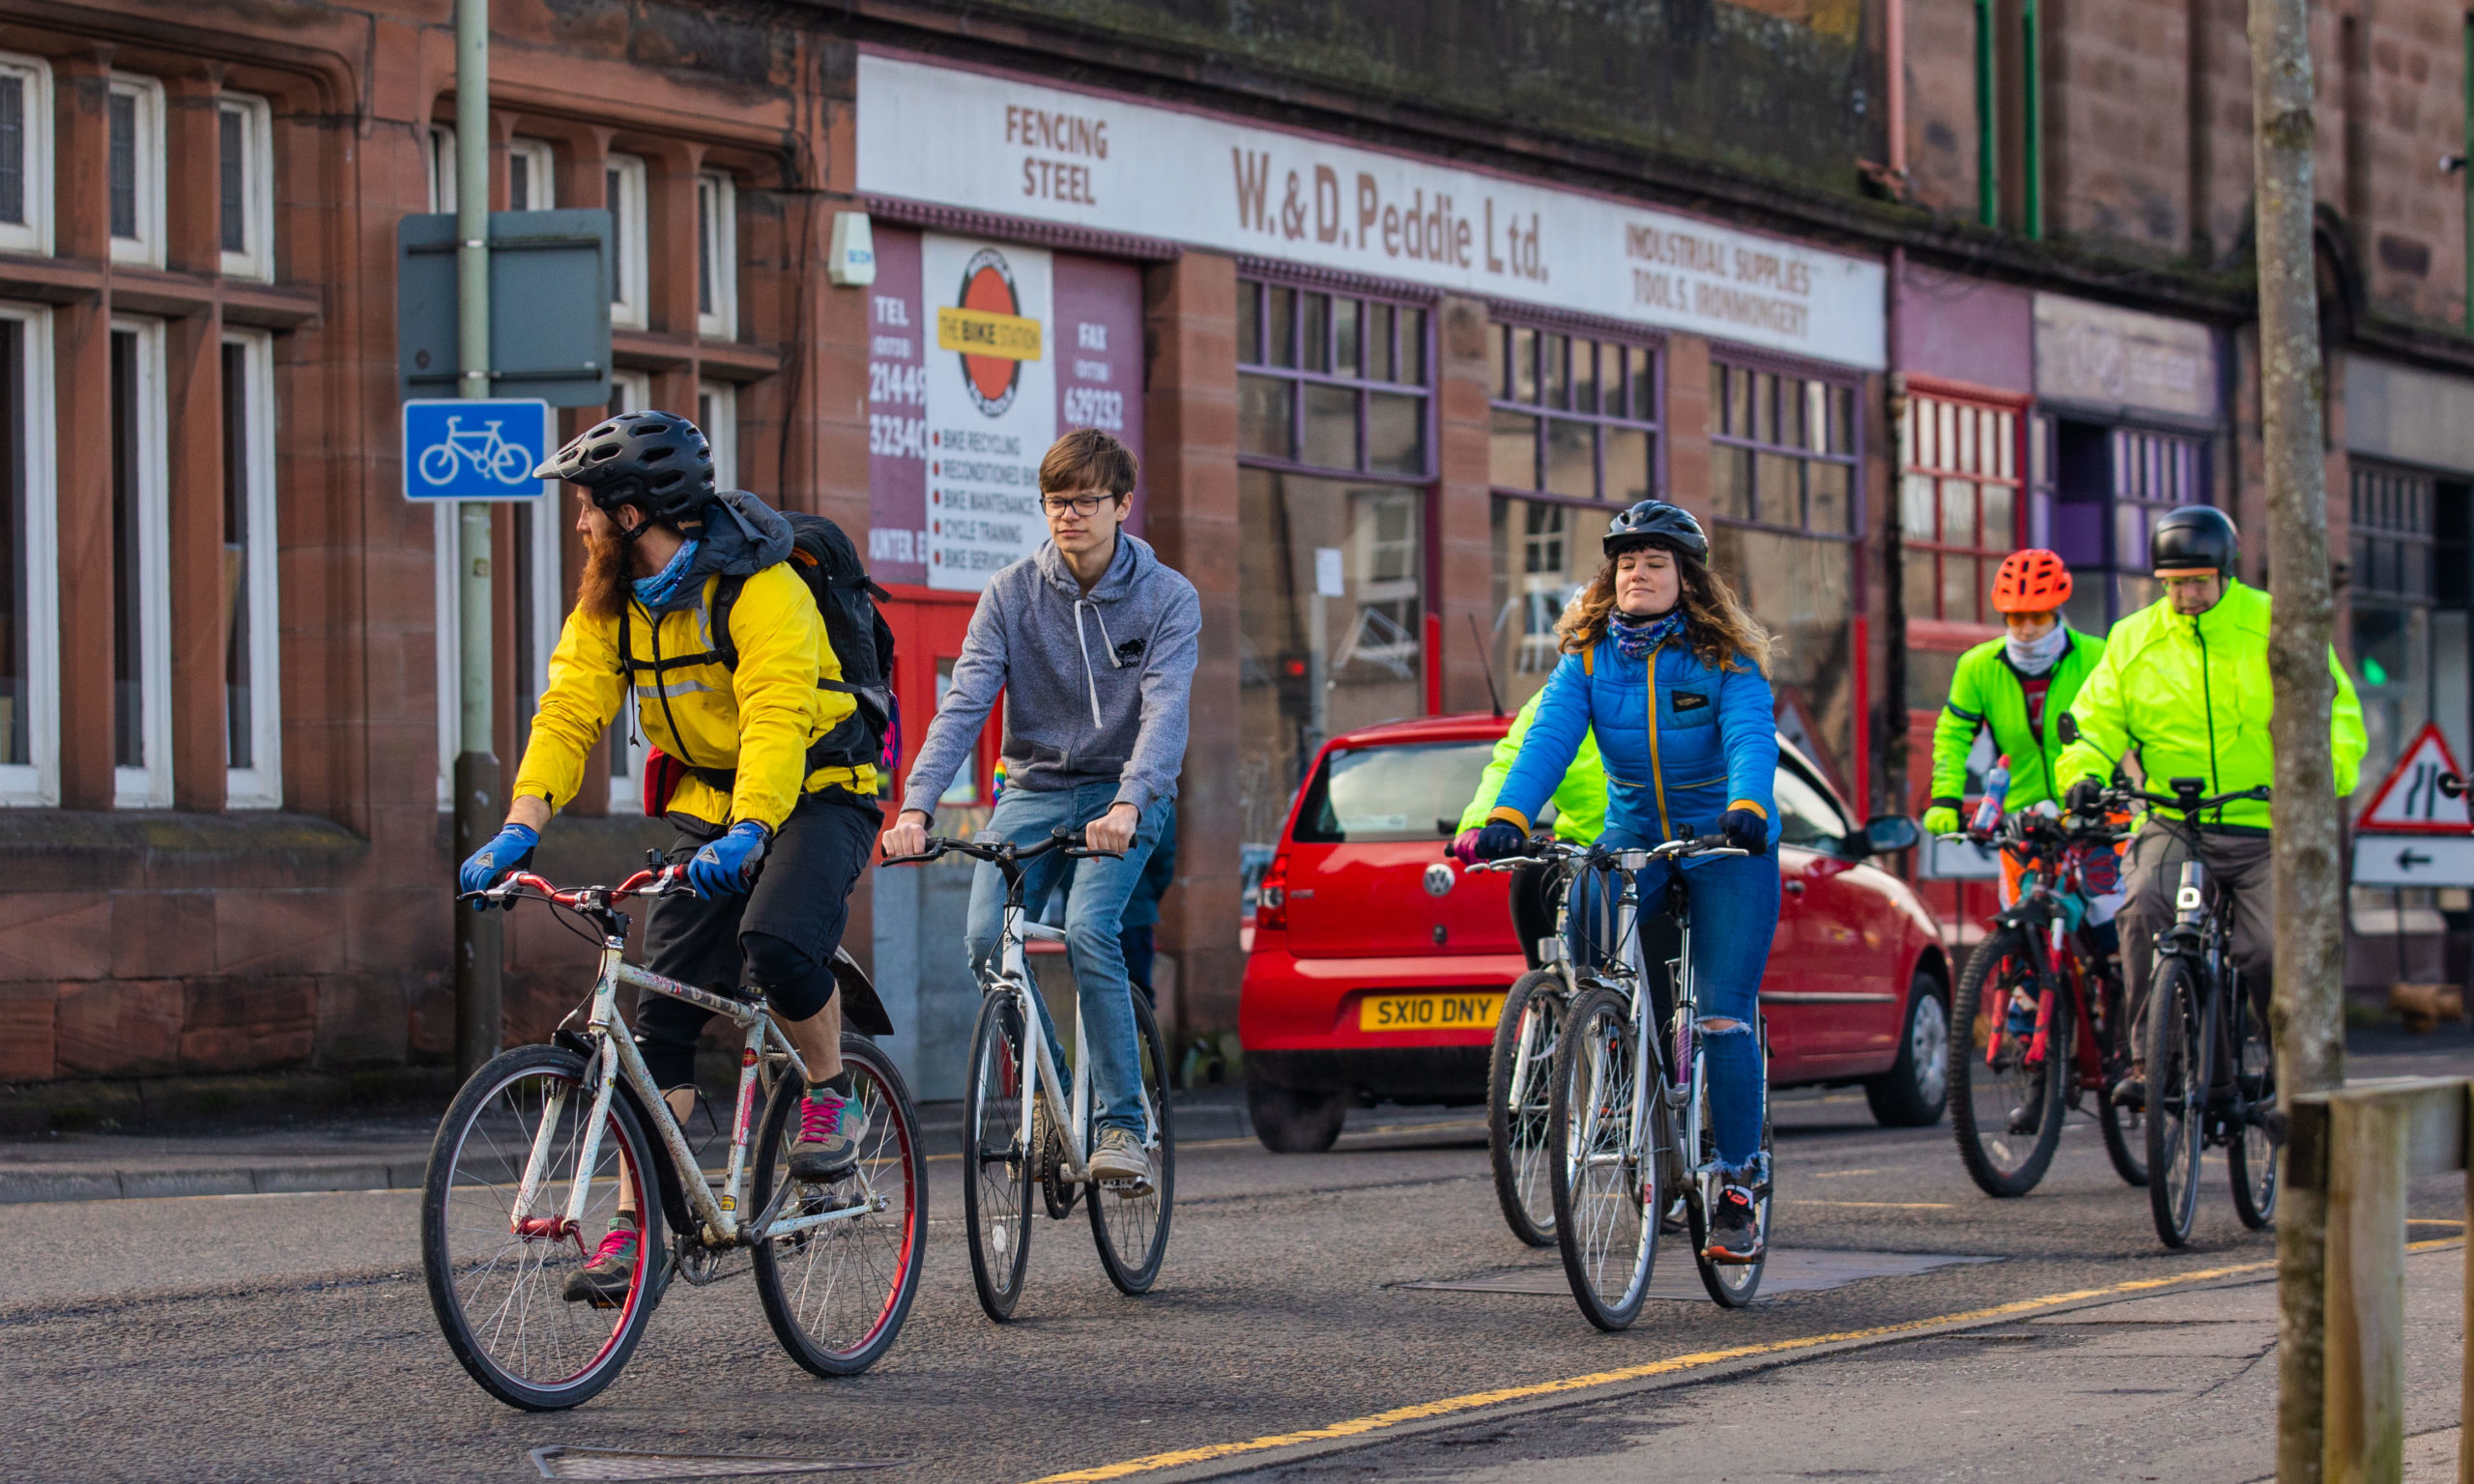 A generous donor has pledged £2,000 towards the future of The Bike Station in Perth.